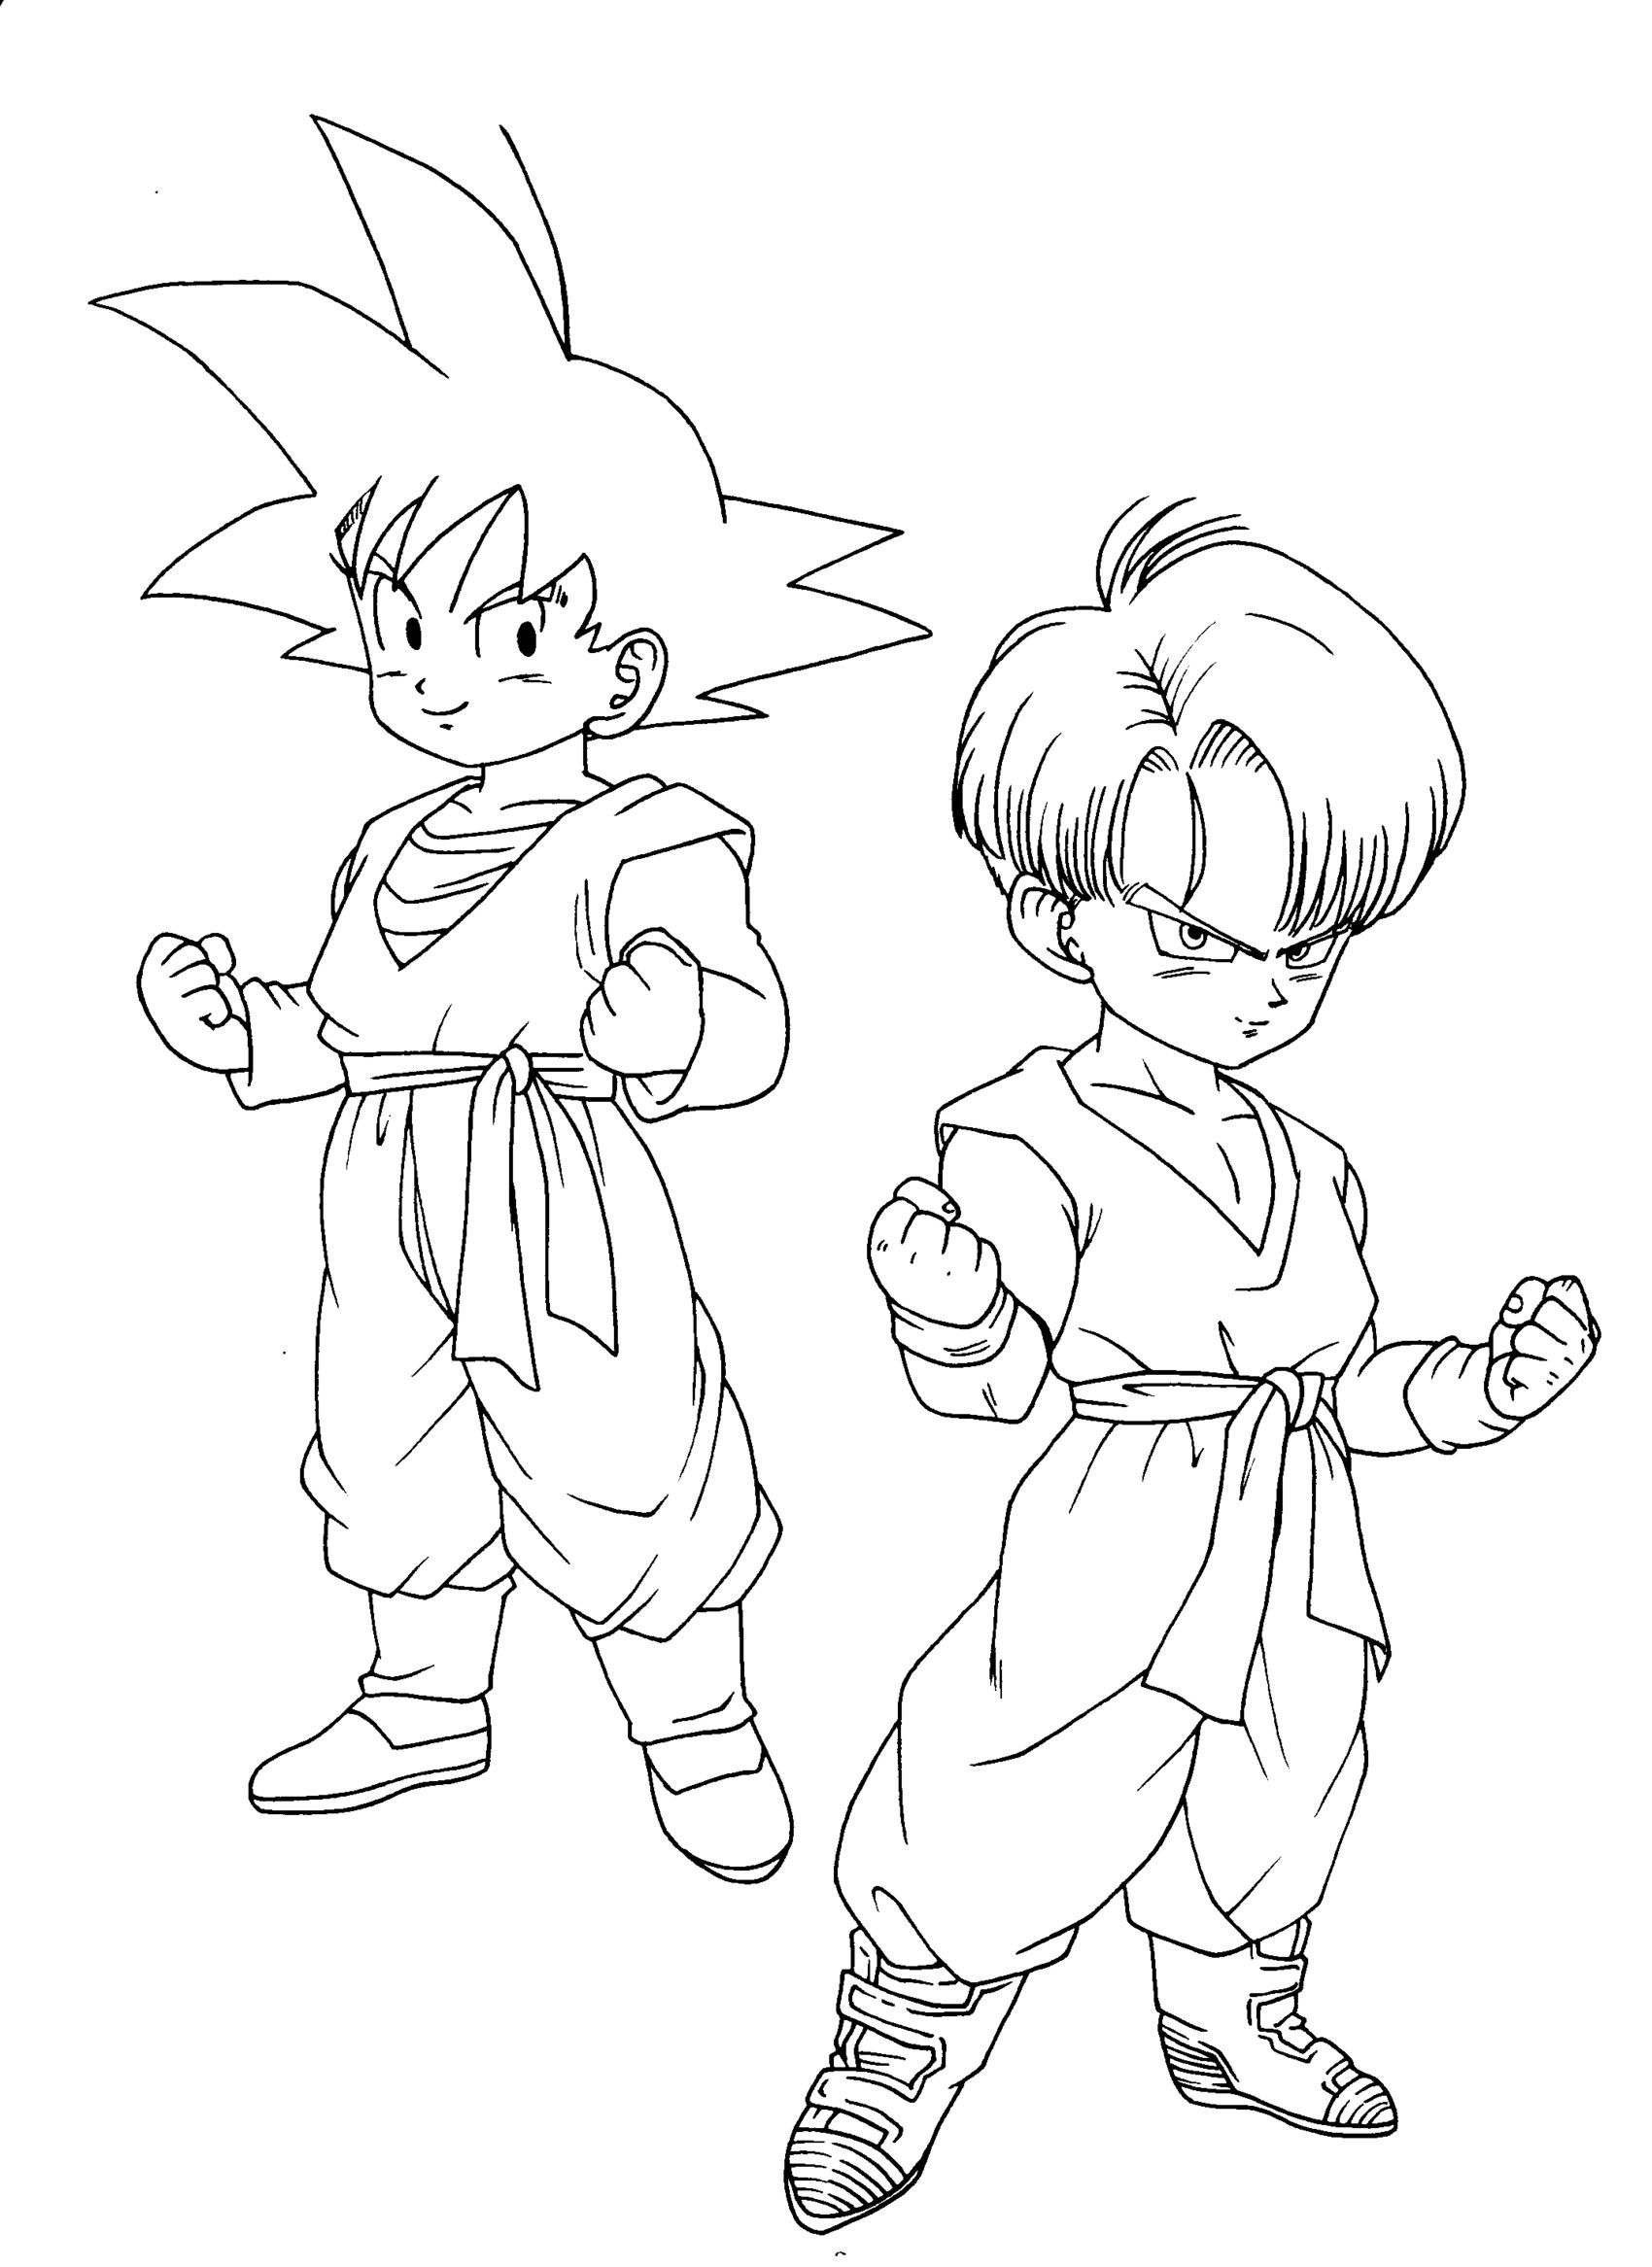 Coloriages dragon ball z 13 coloriage dragon ball z coloriages pour enfants - Dessin dragon ball z facile ...